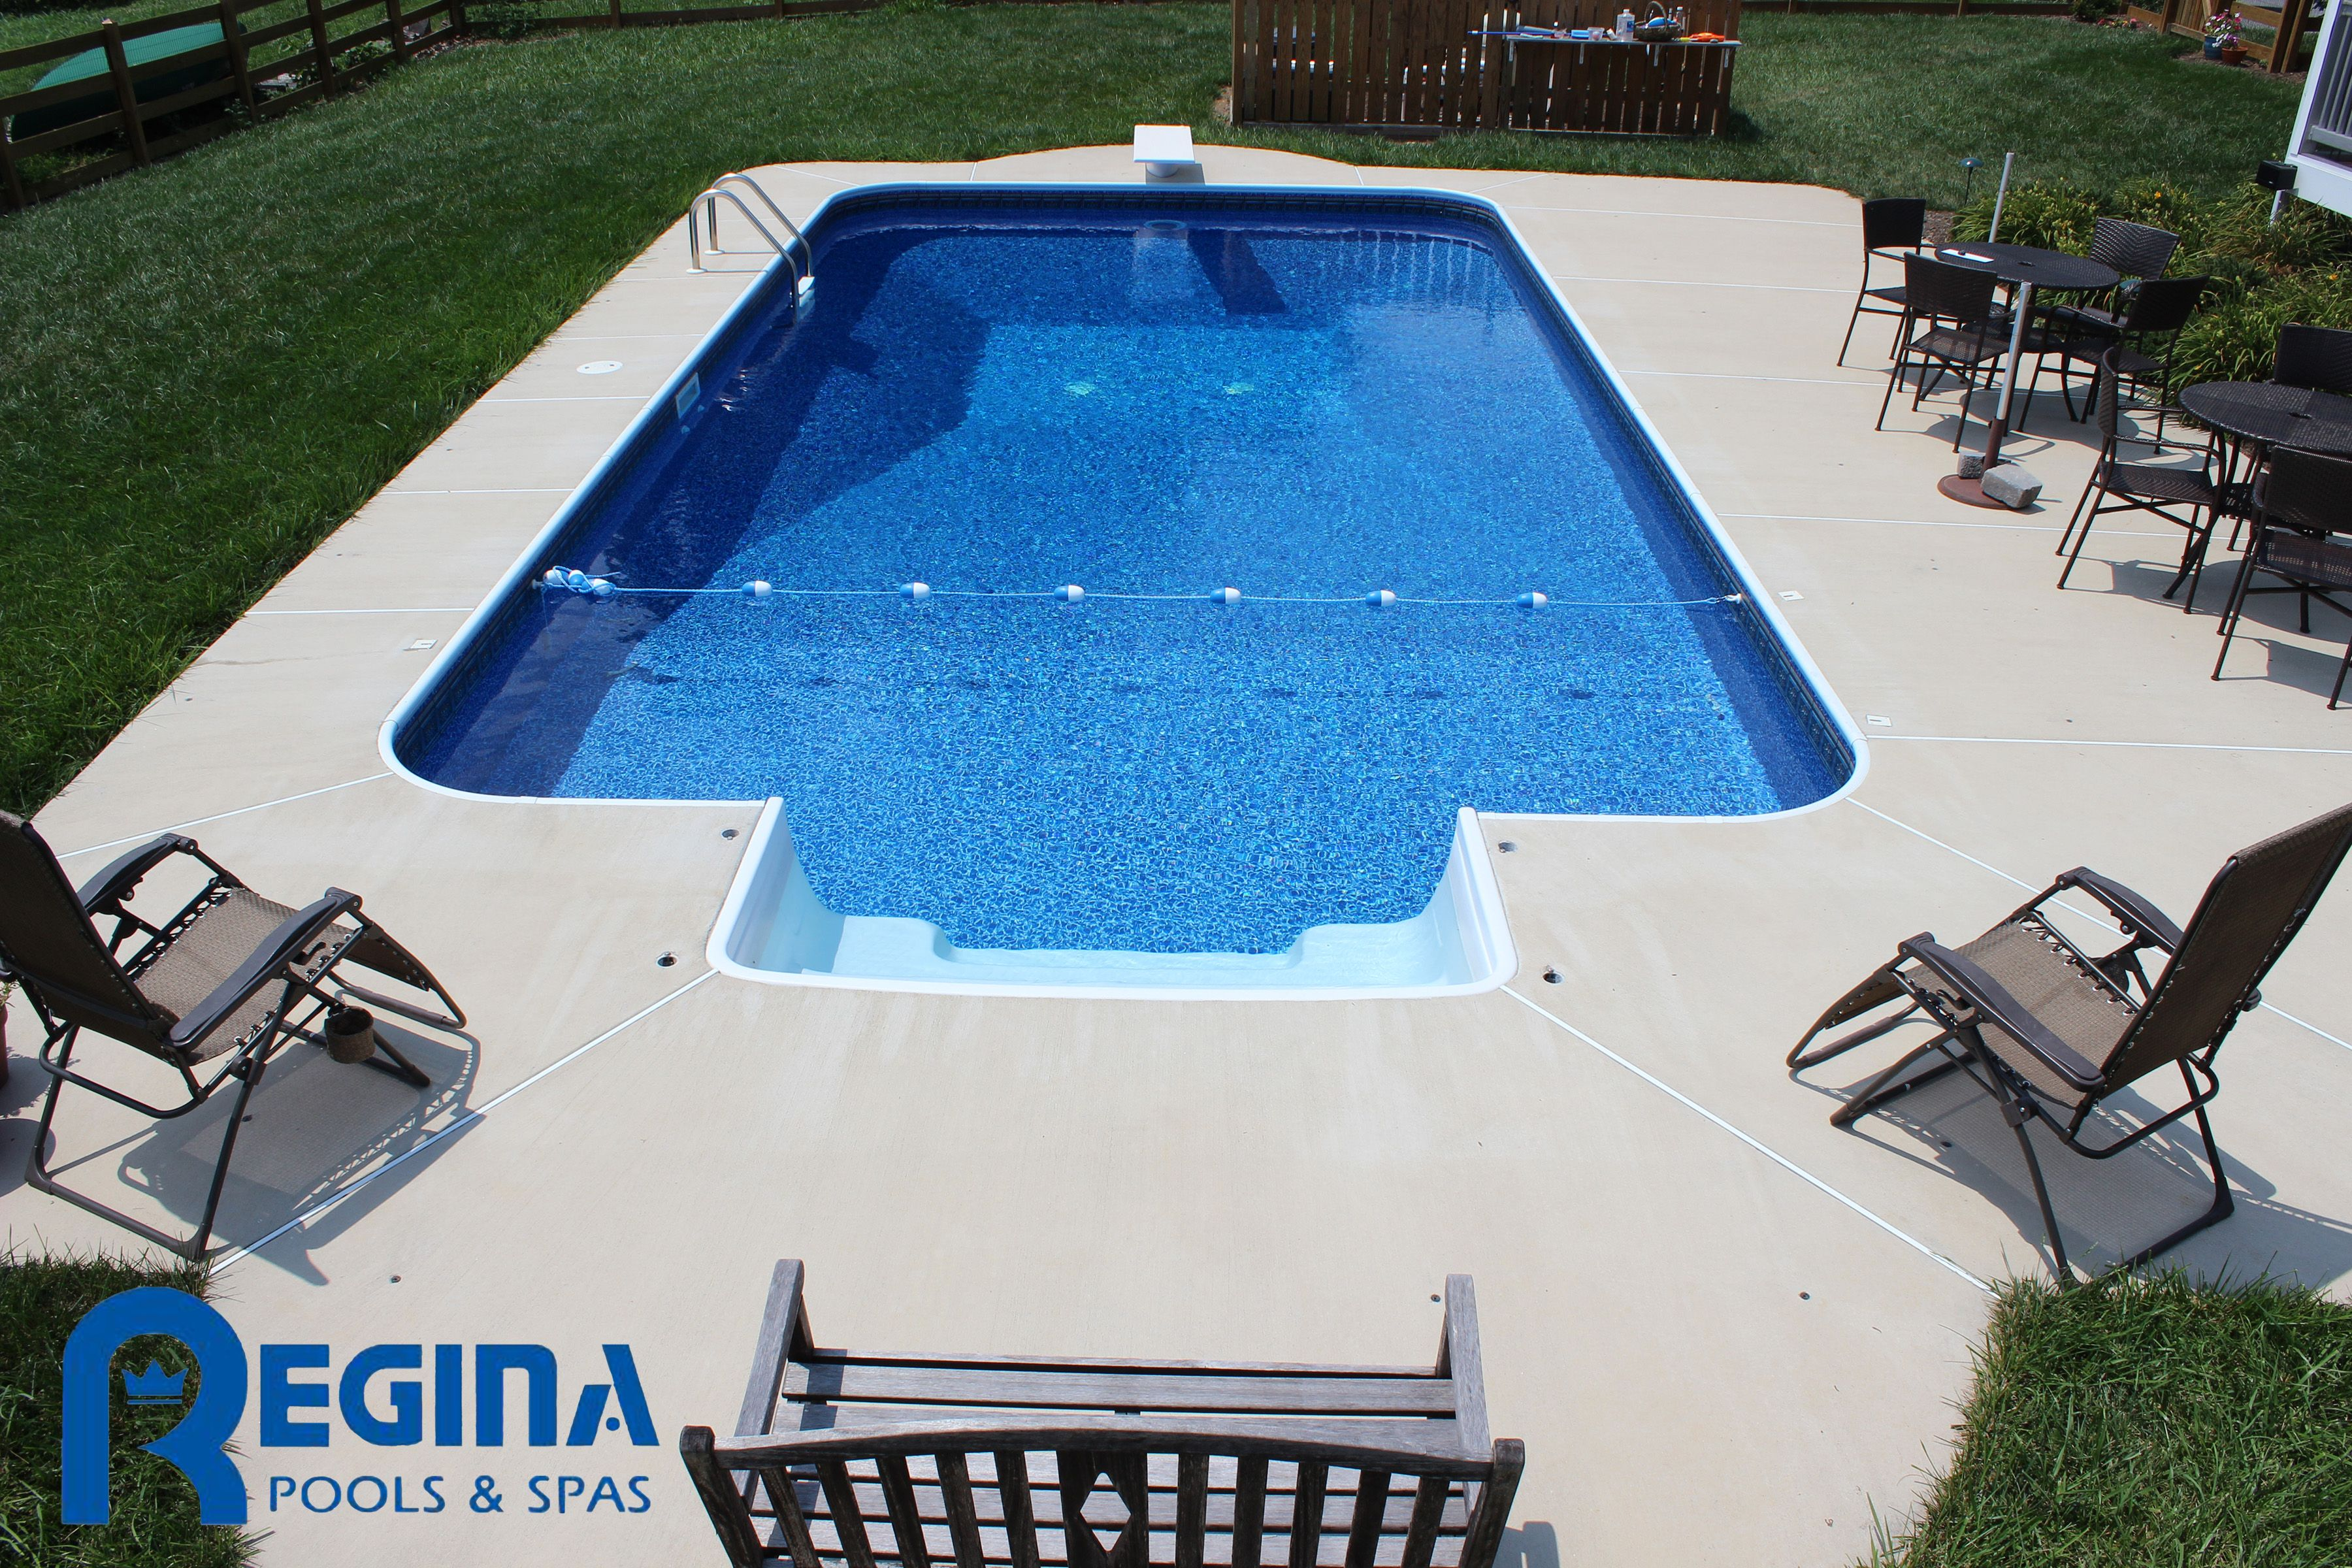 Rectangle shaped vinyl liner swimming pool with diving board and